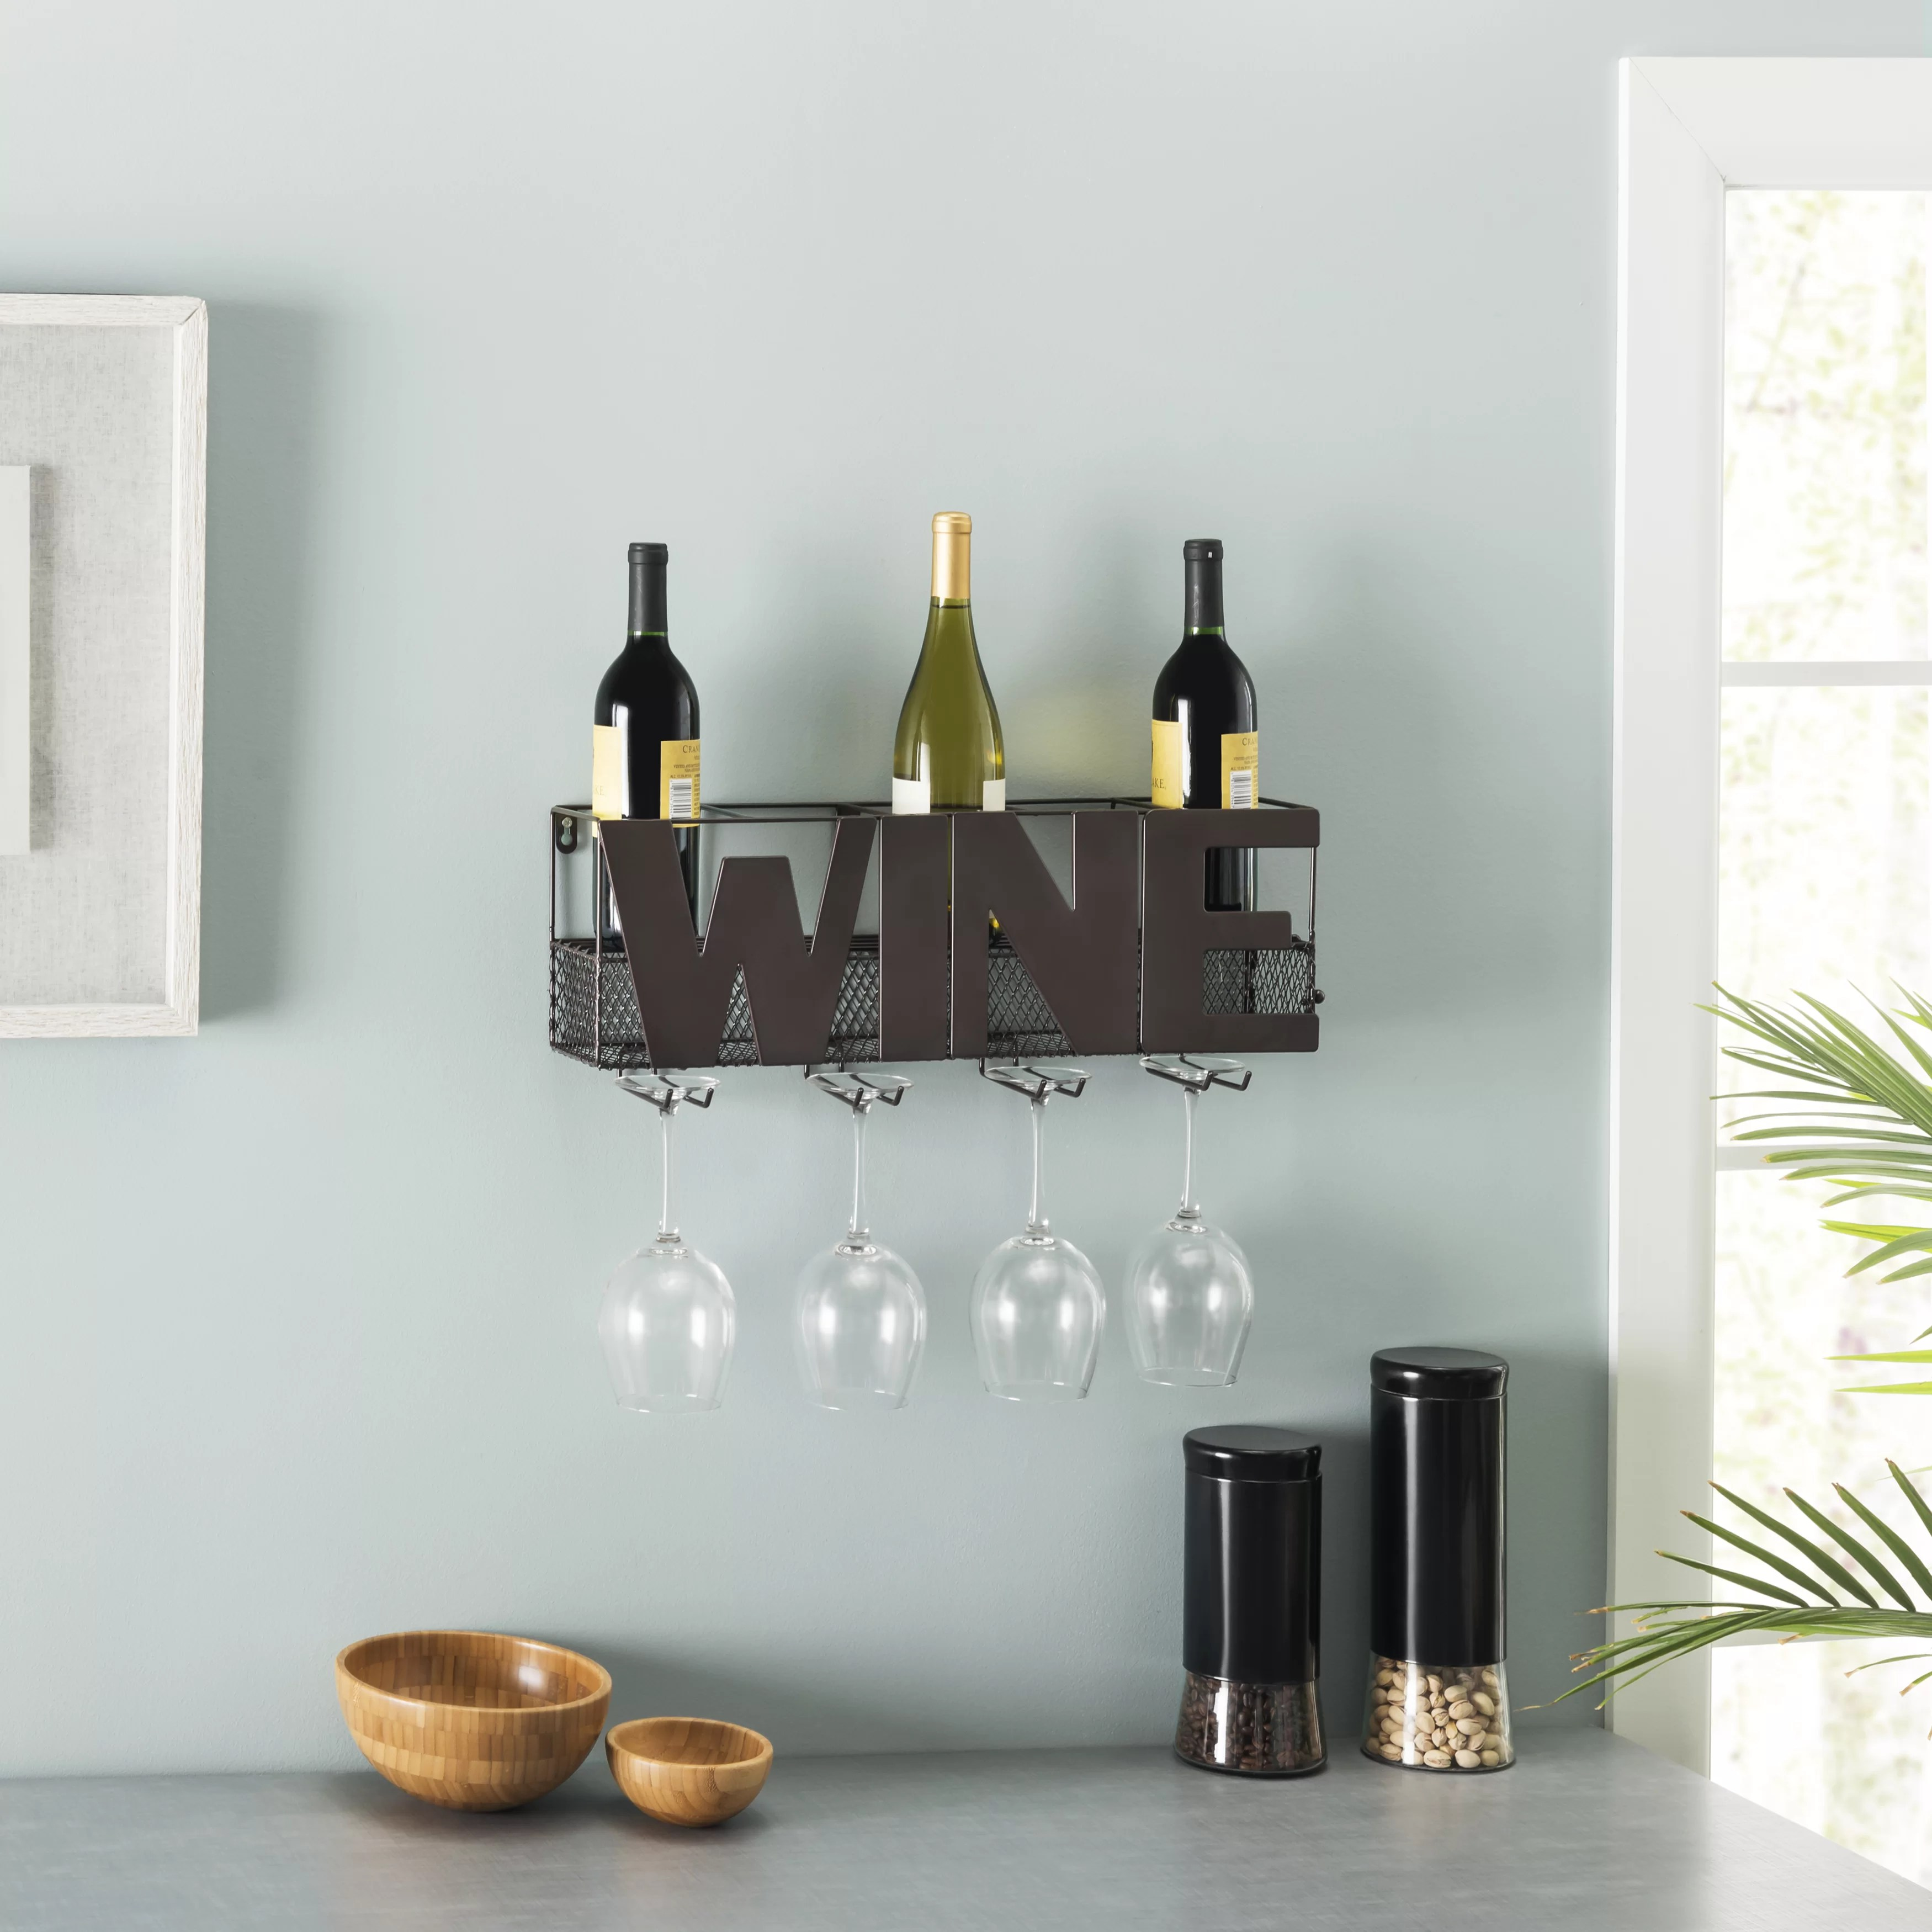 Decorative Metal Wine Racks Onika Decorative Metal 5 Bottle Wall Mounted Wine Rack